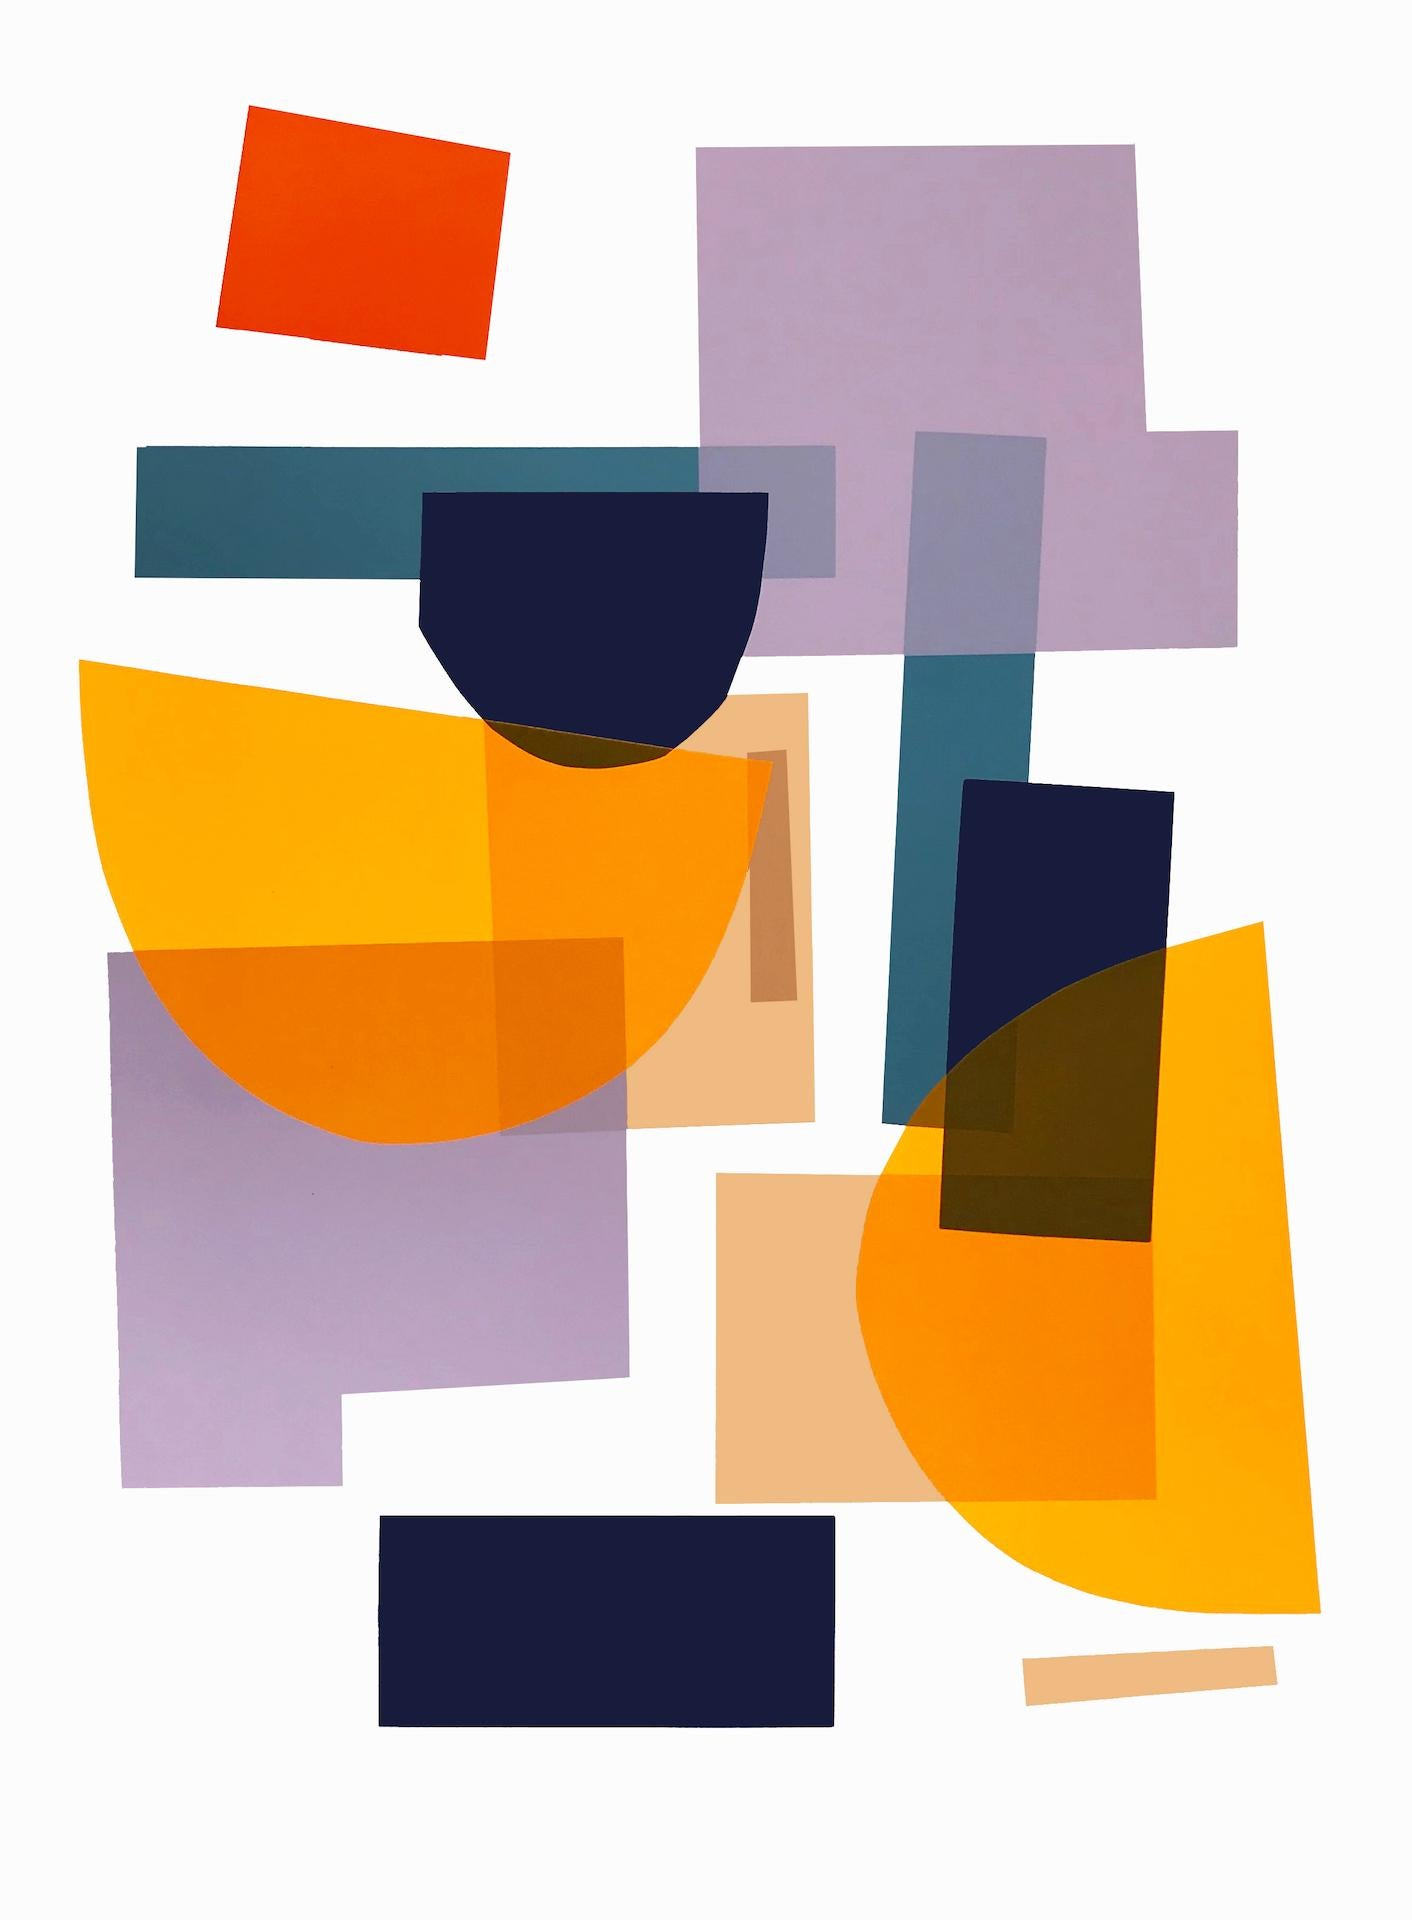 Flux 01 BY JONATHAN LAWES, Original Unqiue Geometric Prints, Bright Abstract Art